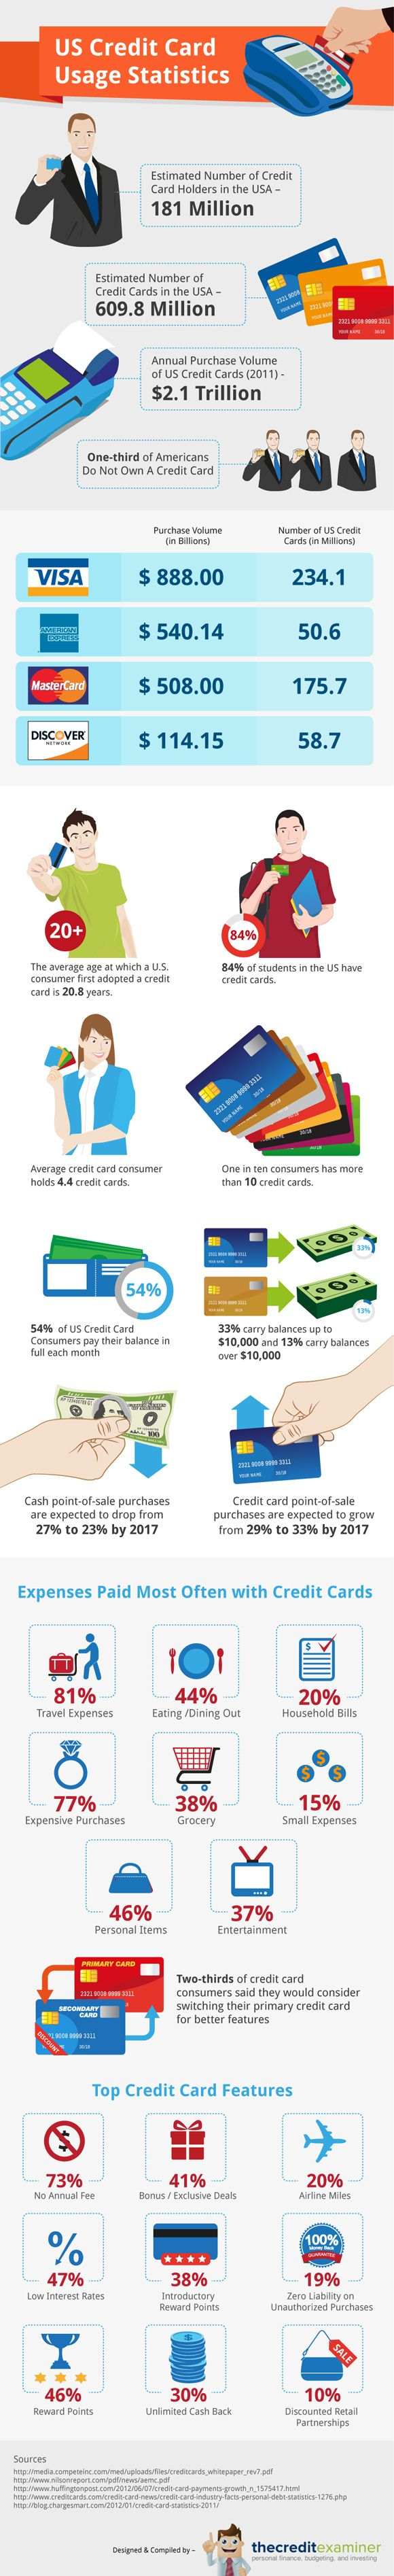 us credit card usage discover infographics